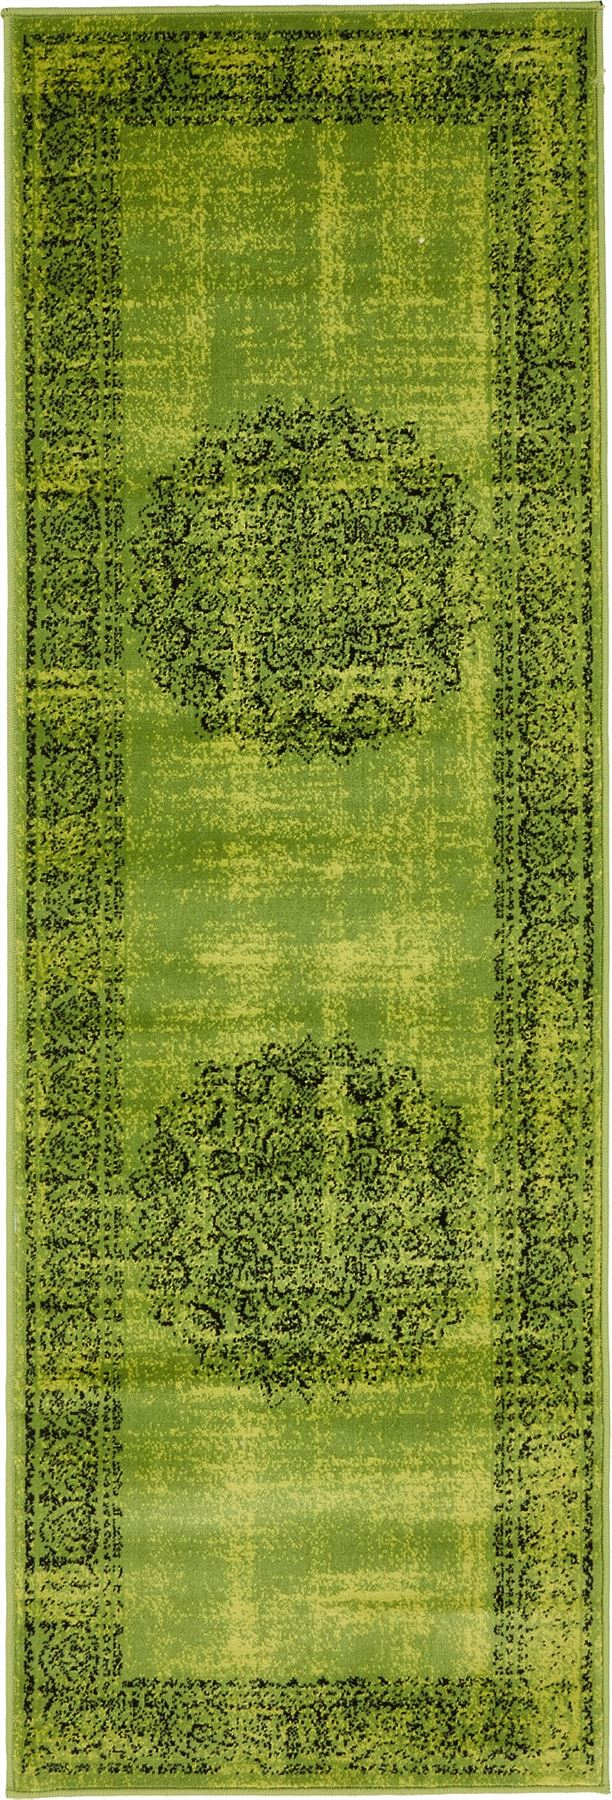 Transitional Green Faded Large Rug Modern Small